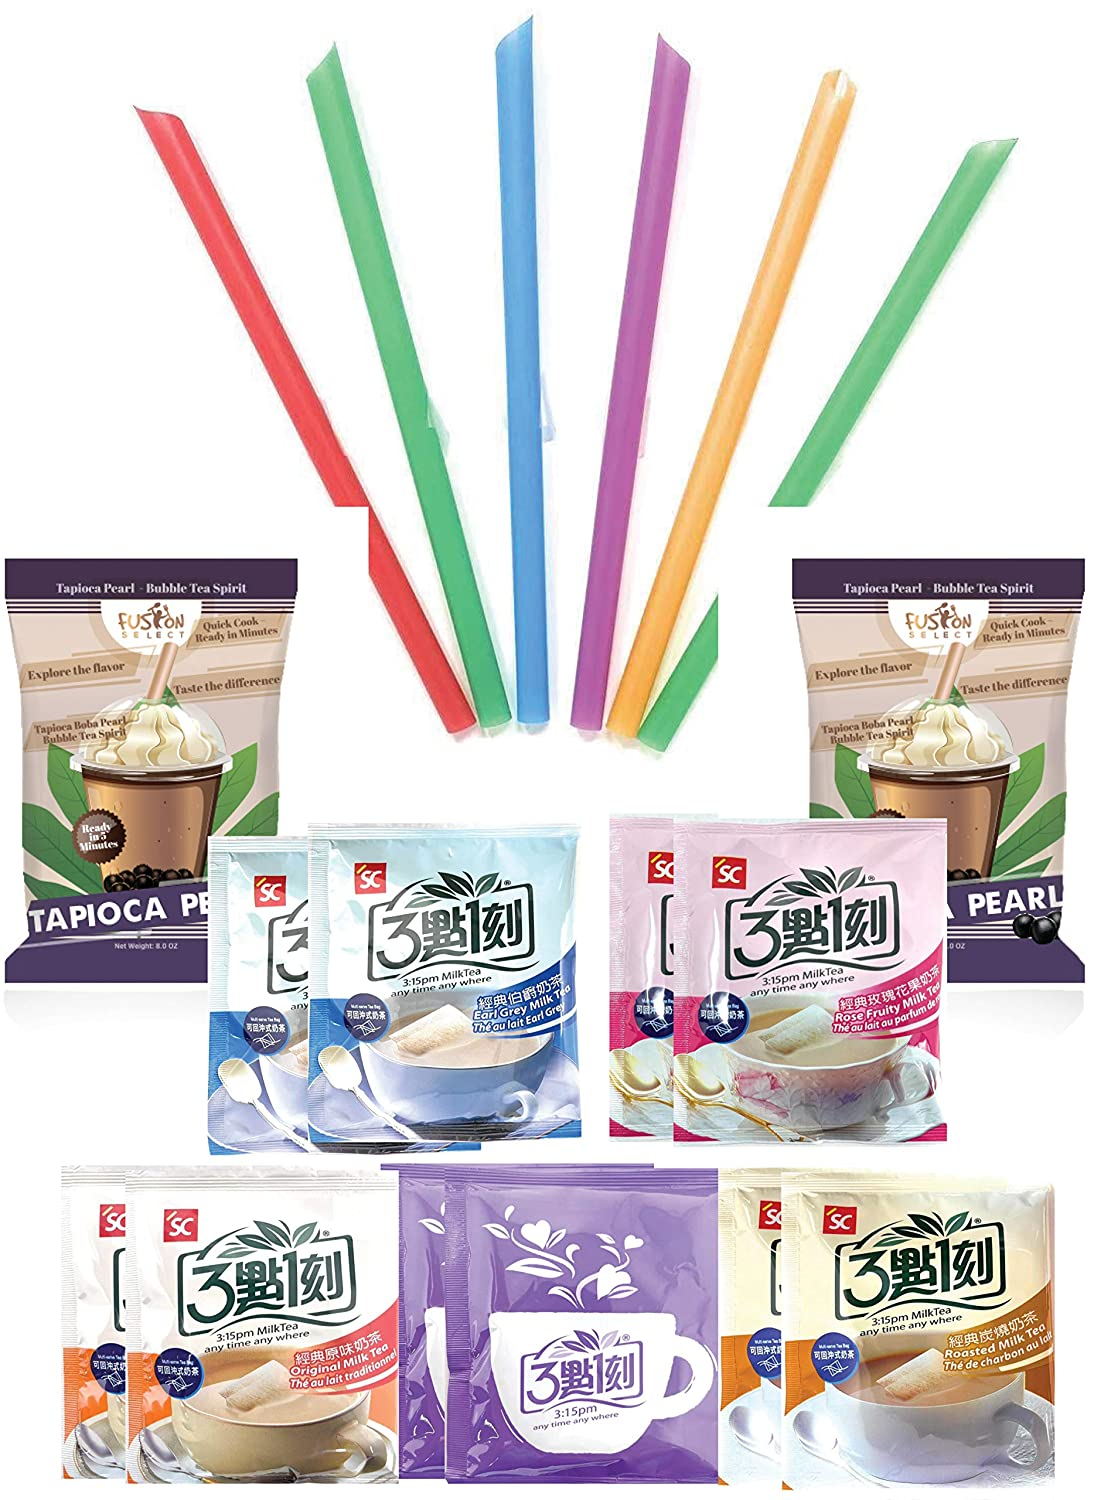 Authentic Bubble Tea Kit 5 New products world's highest quality popular Variety Mixed P Boba Challenge the lowest price Flavors